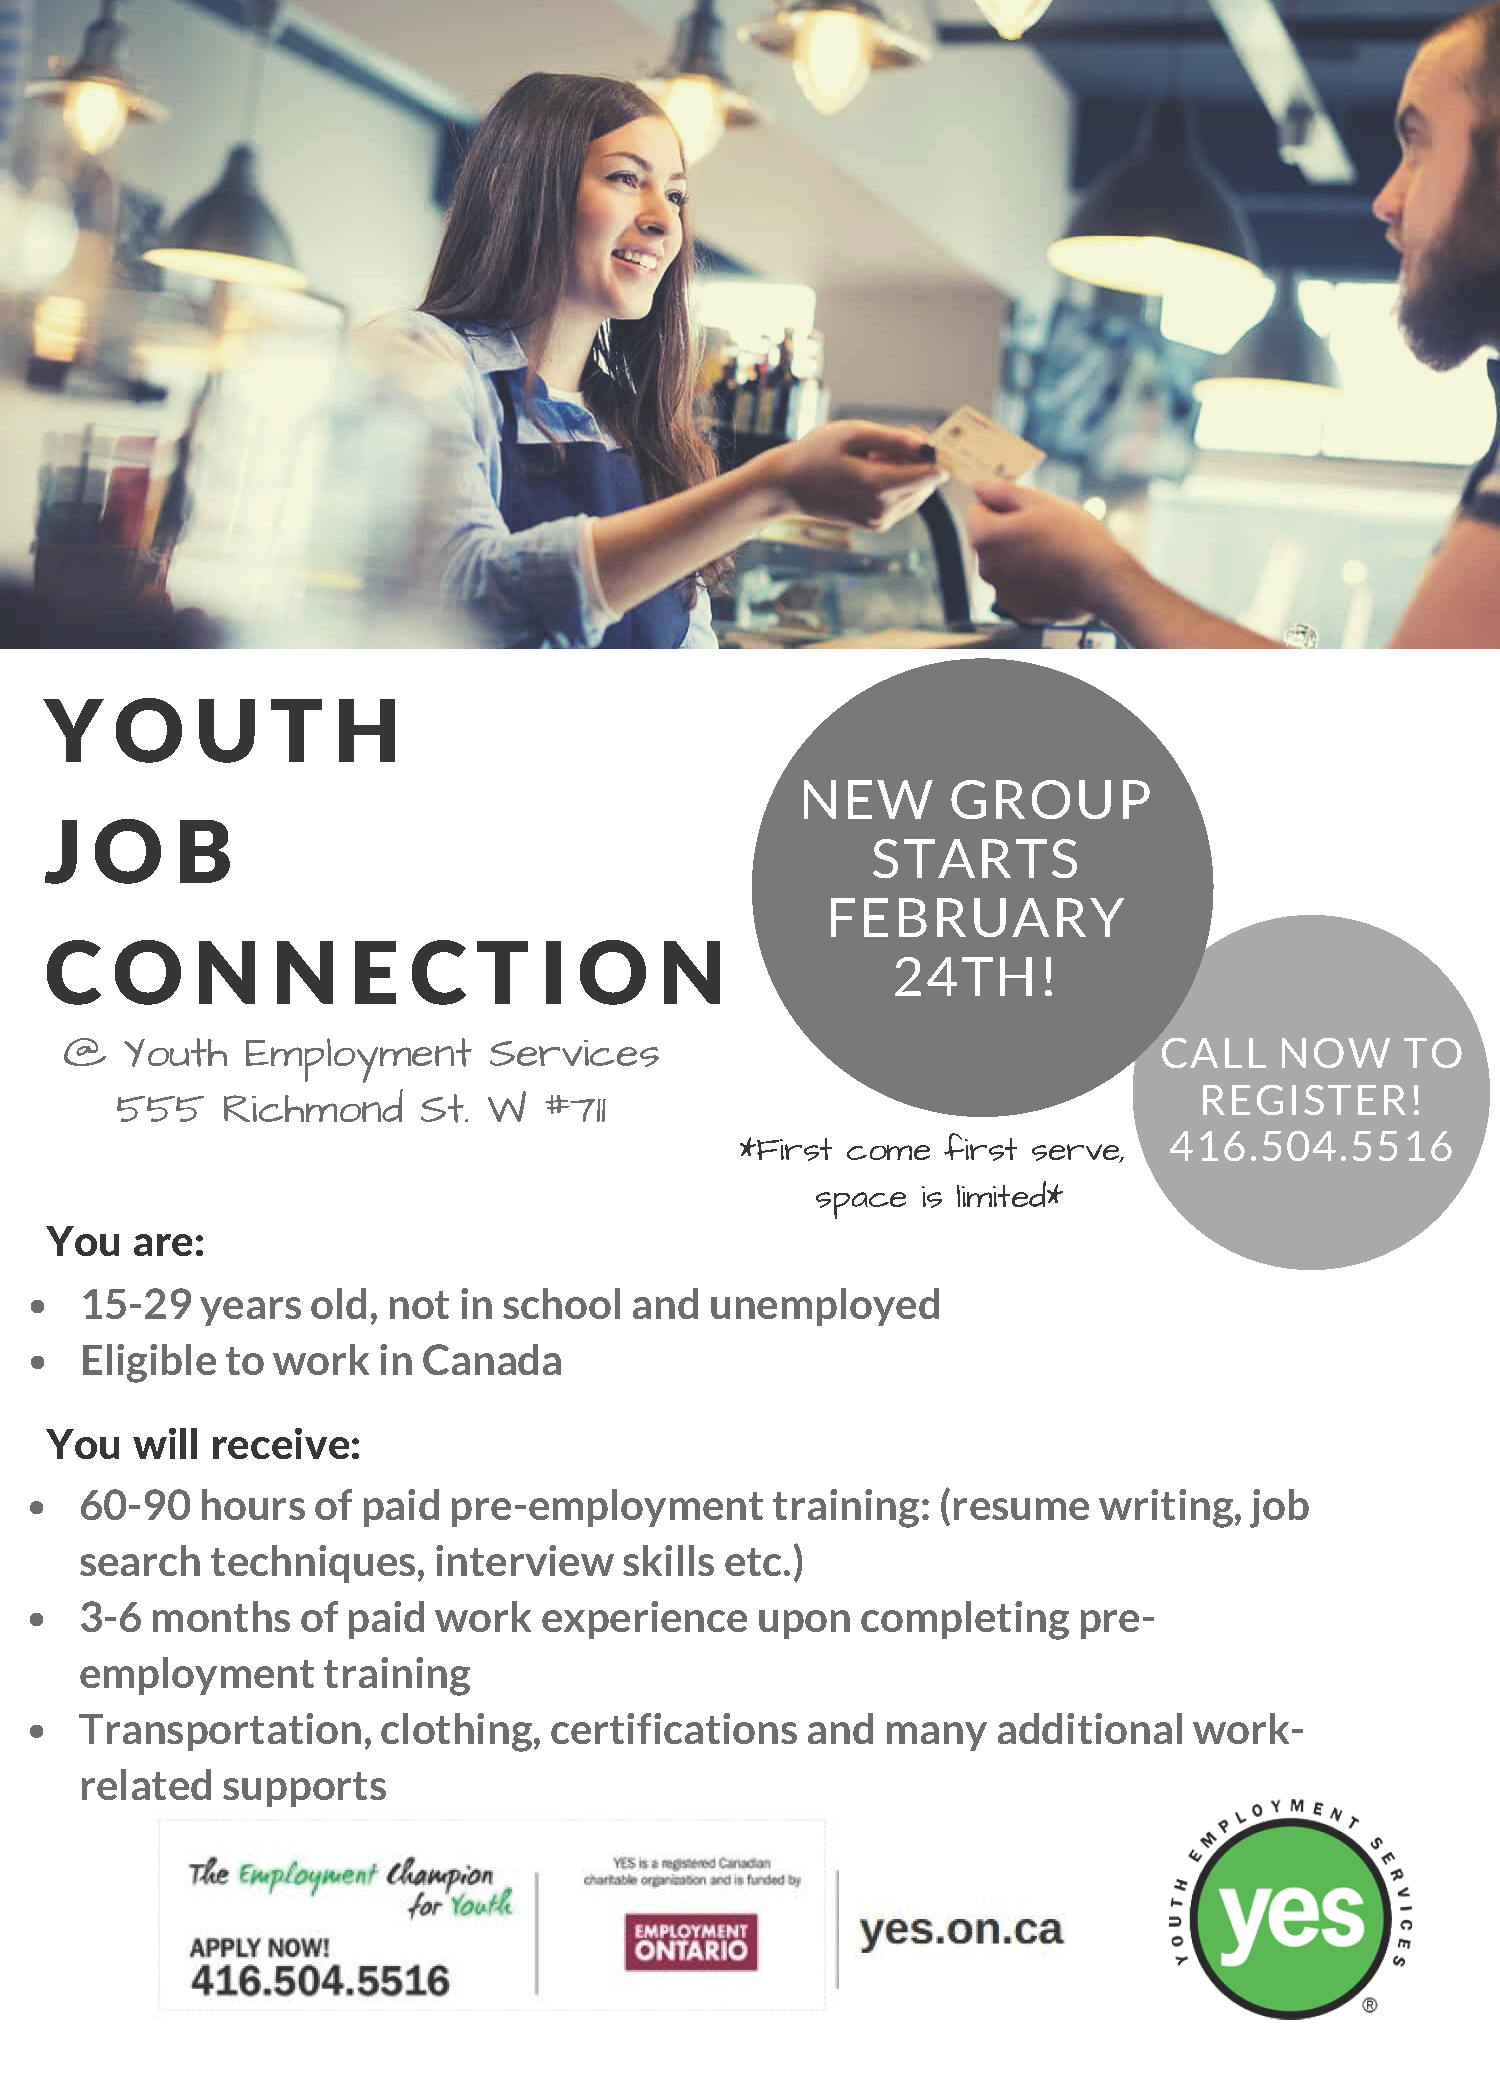 Youth Job Connection February 24th Youth Employment Services Yes